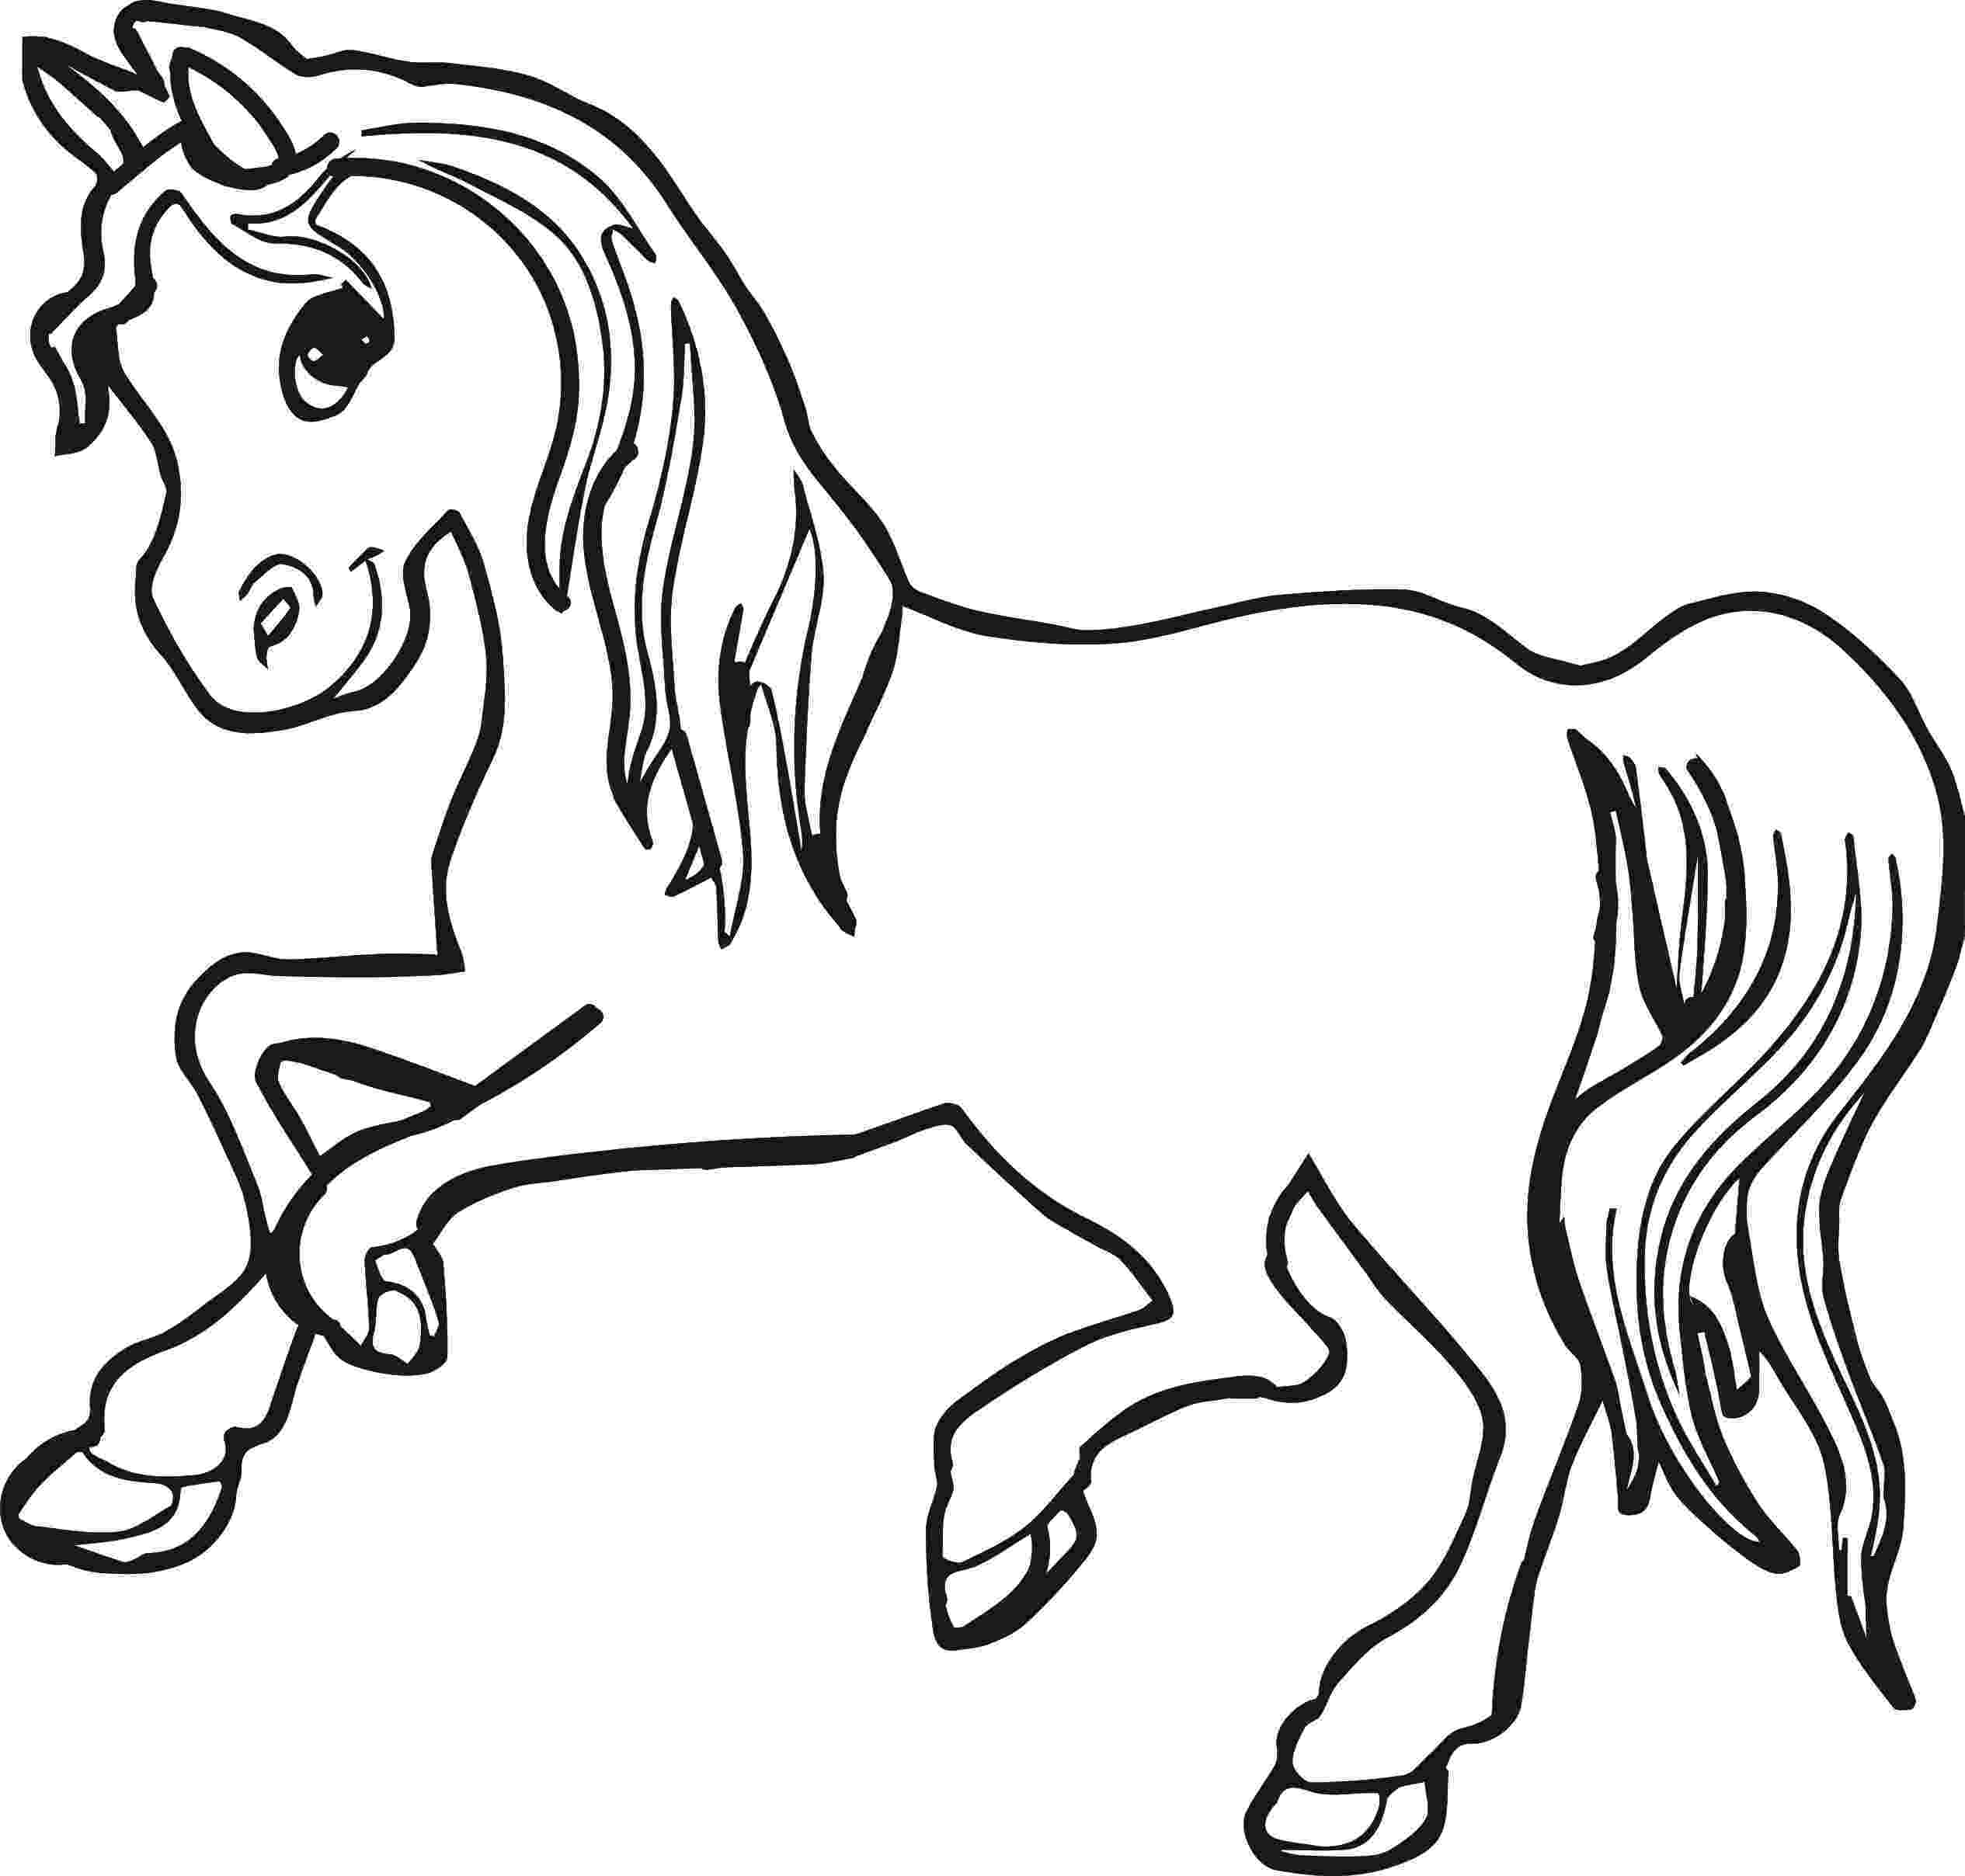 horse coloring sheets to print free printable horse coloring pages for kids cool2bkids horse print sheets coloring to